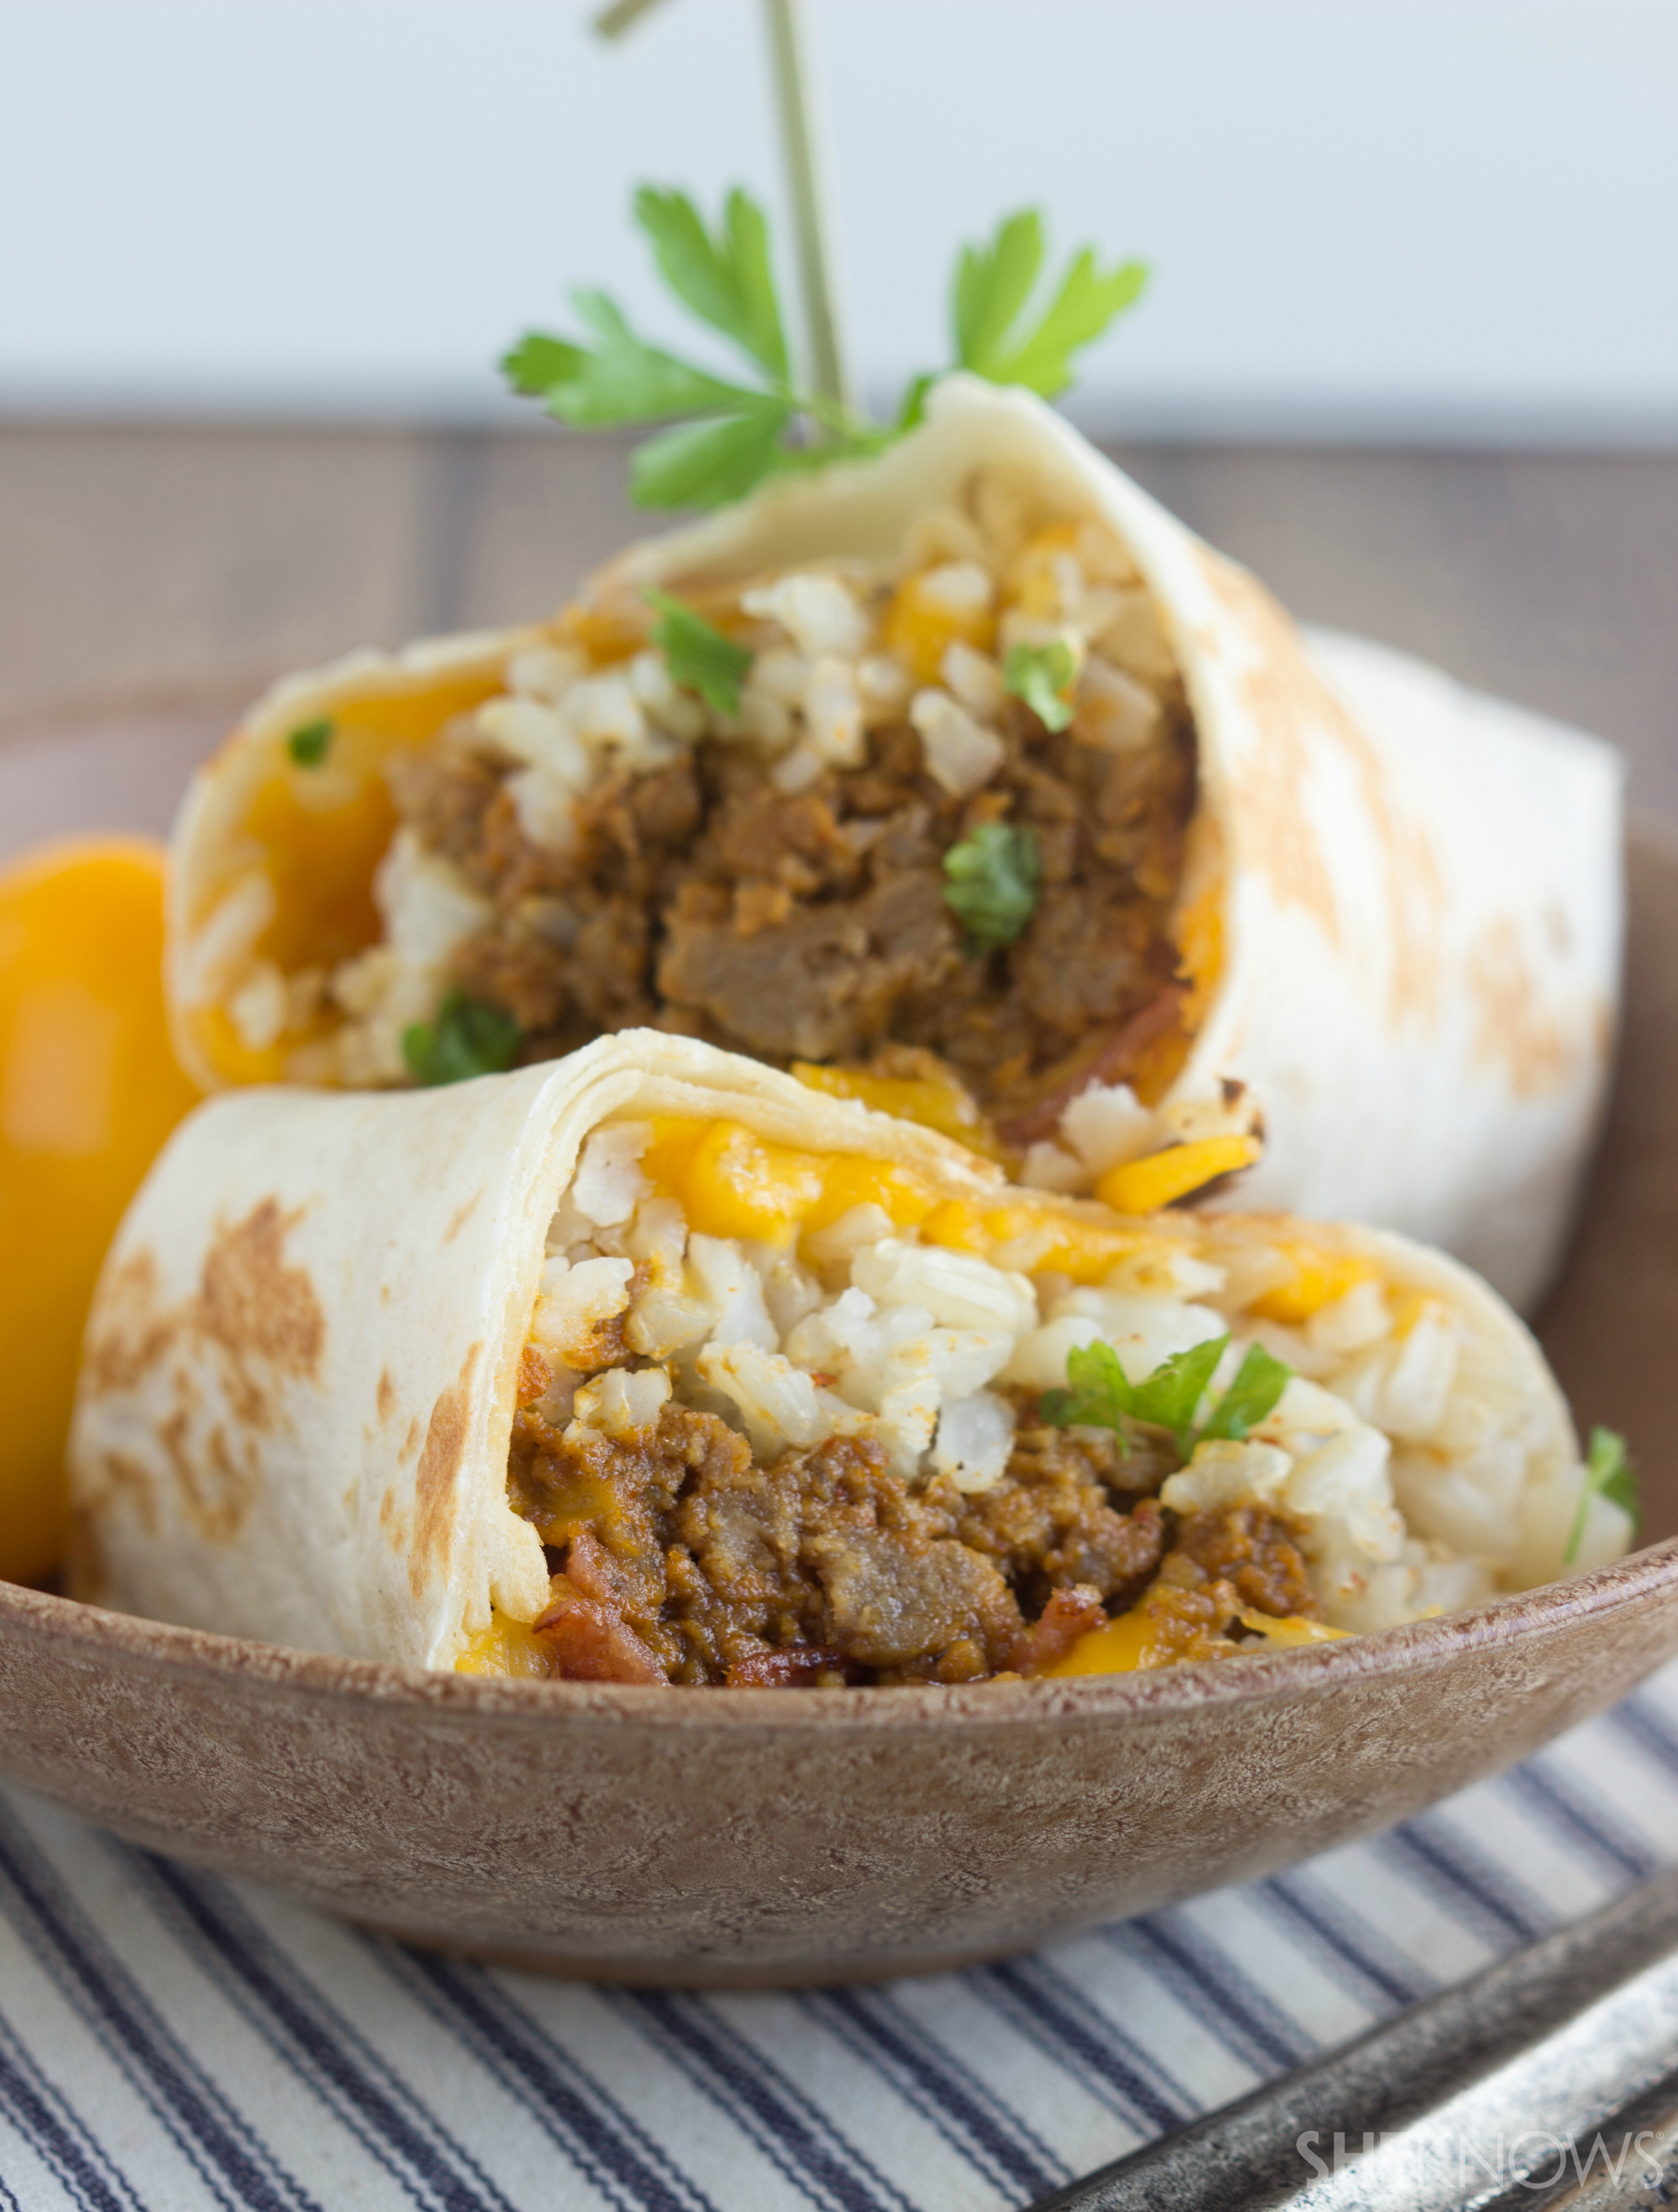 Quesarito meat lovers